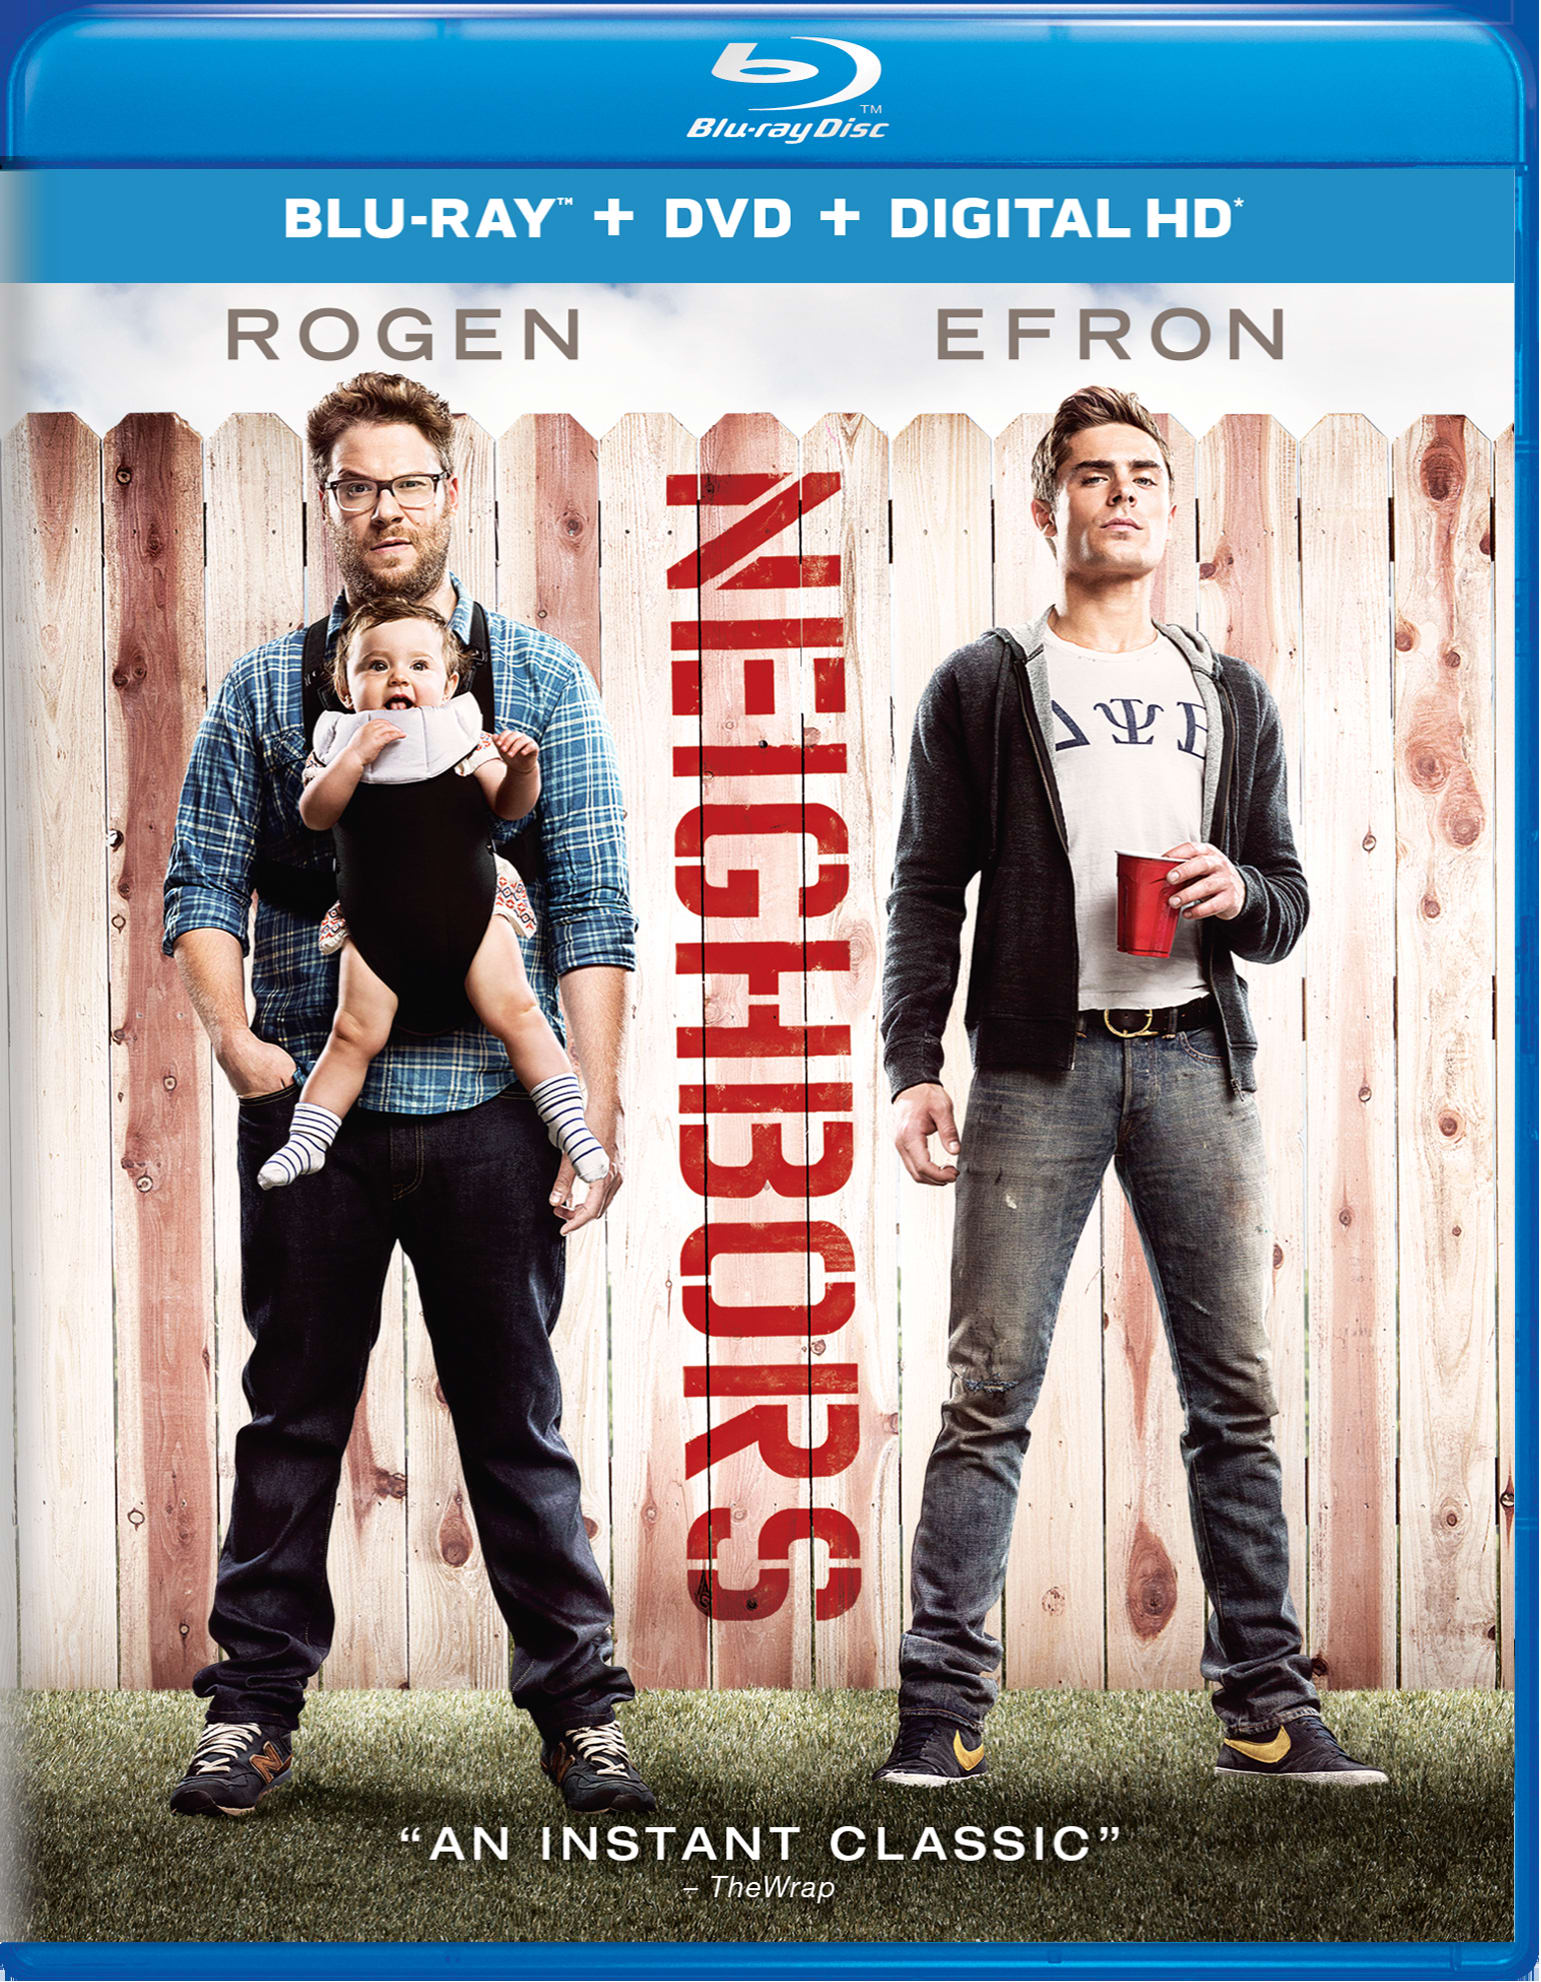 Neighbors (DVD + Digital) [Blu-ray]